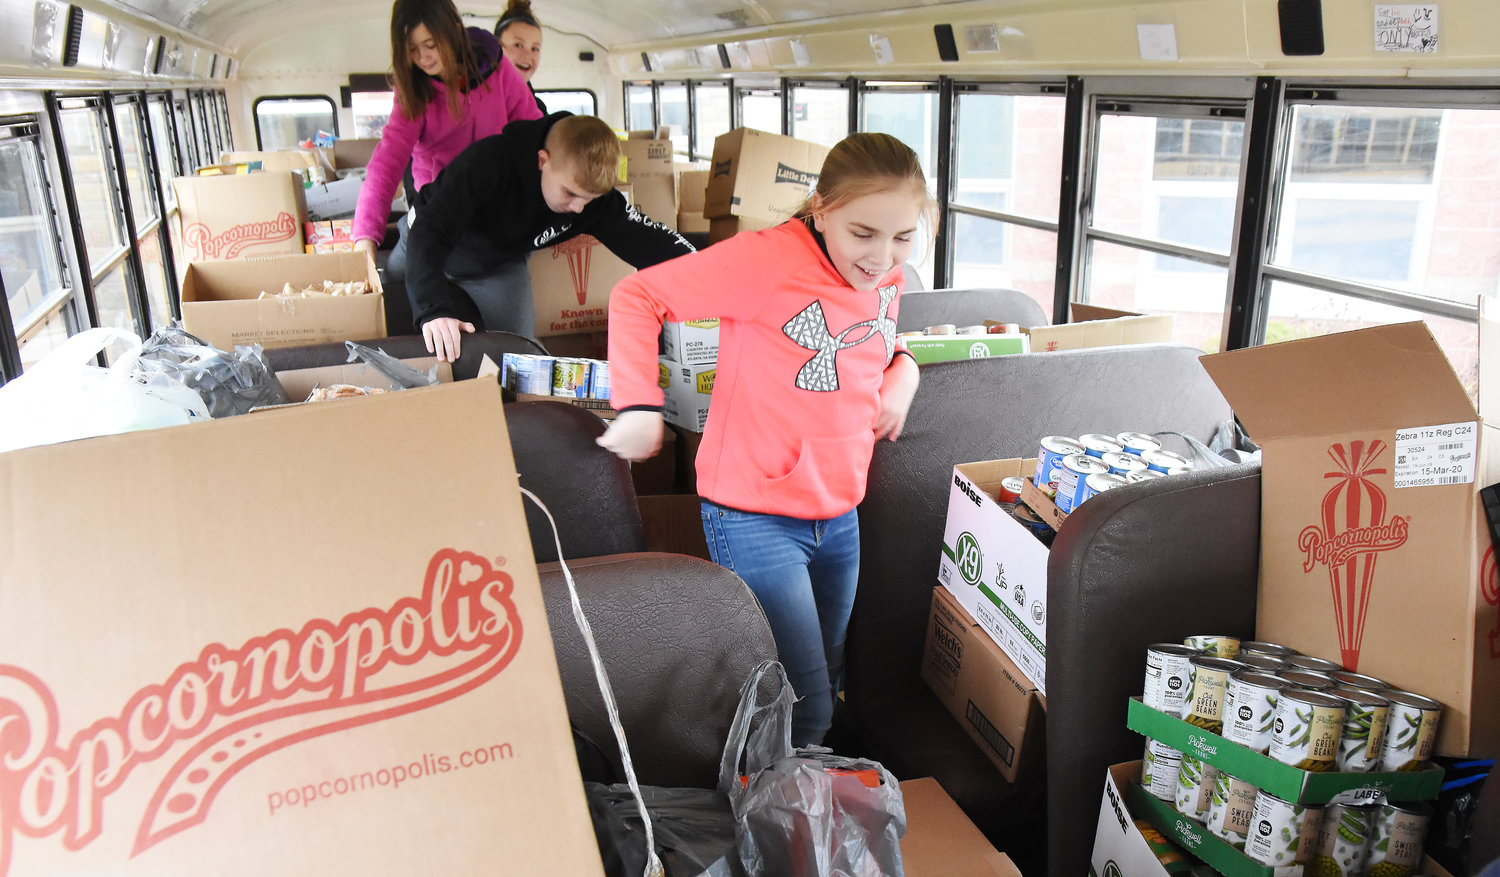 Owensville elementary School students (front to back) Rylee Dare, Wyatt Lewis, Hannah Coello, and Joleen Braun climb out of the bus Monday after finding themselves packed in with food stocks collected by students in their school.